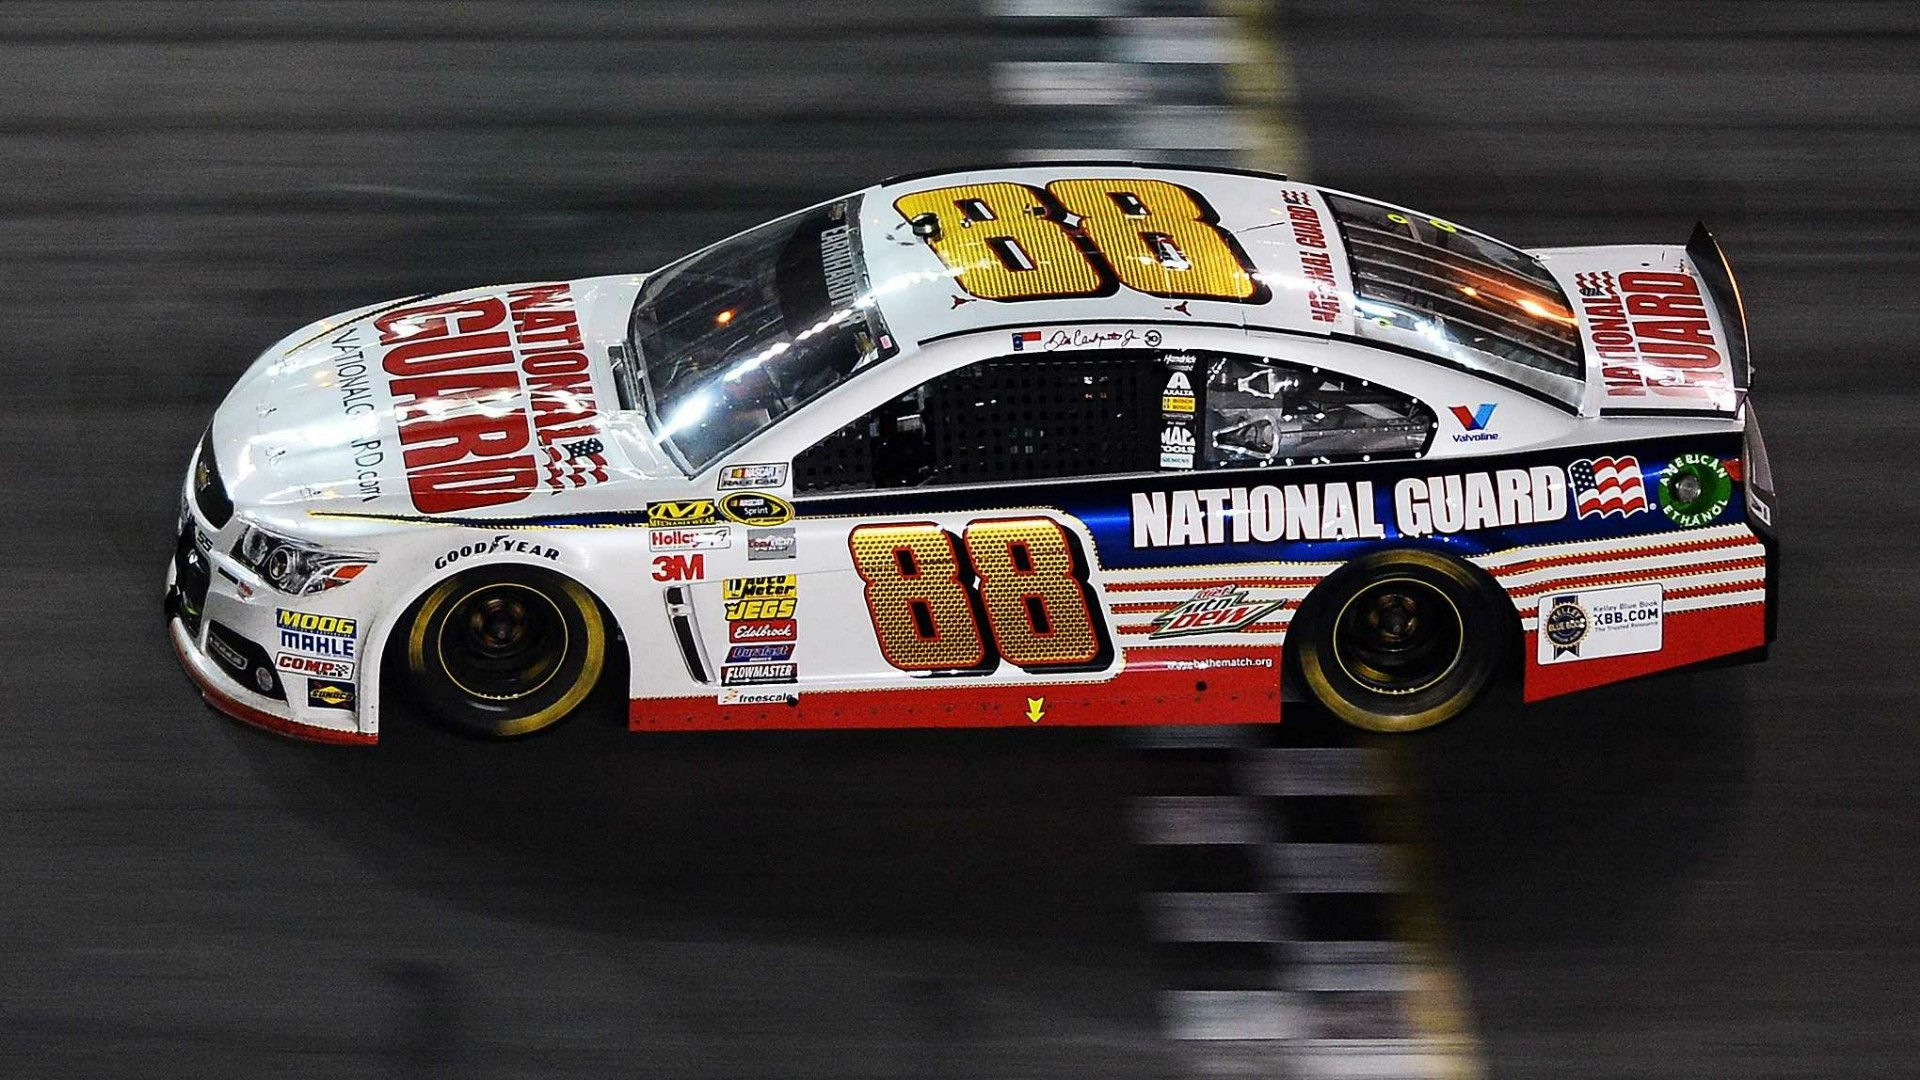 1080 Best Images About Nascar And Dale Jr On Pinterest: Dale Earnhardt Jr. HD Wallpaper